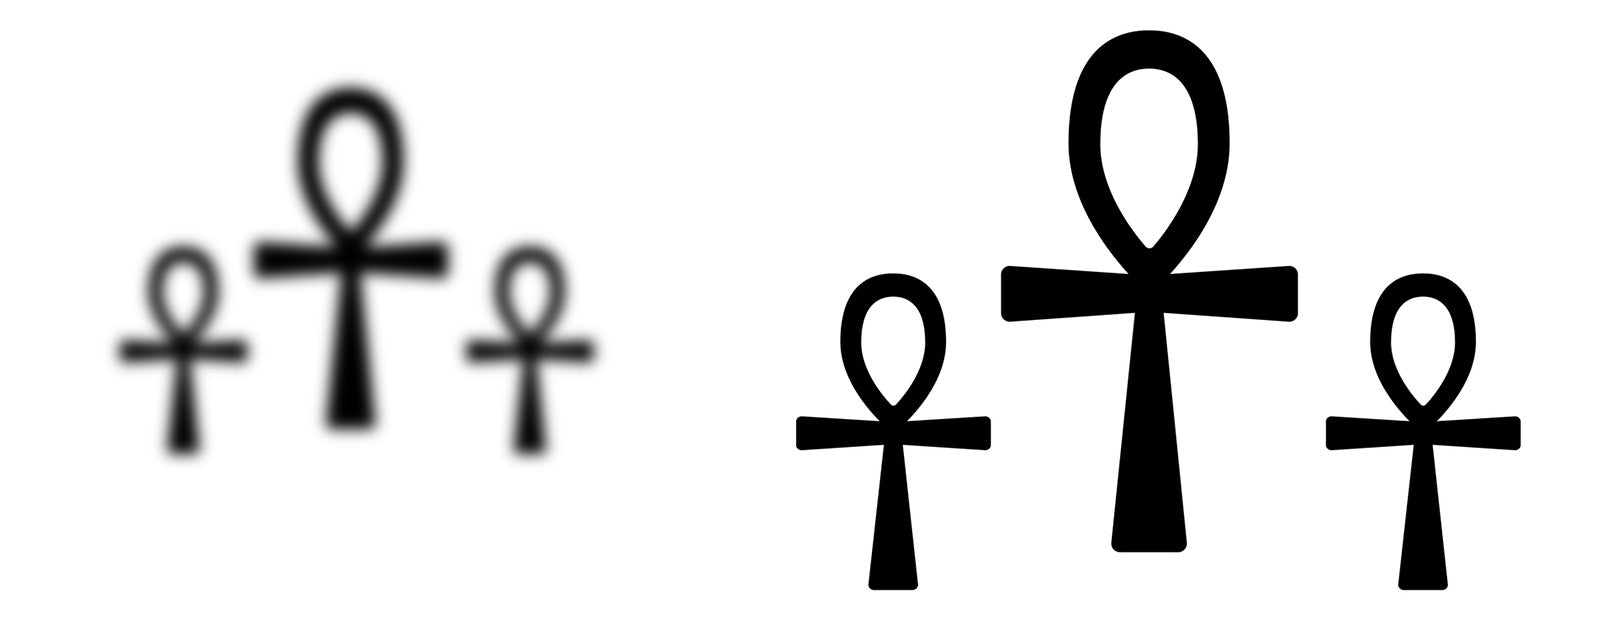 croix-egyptienne-ankh